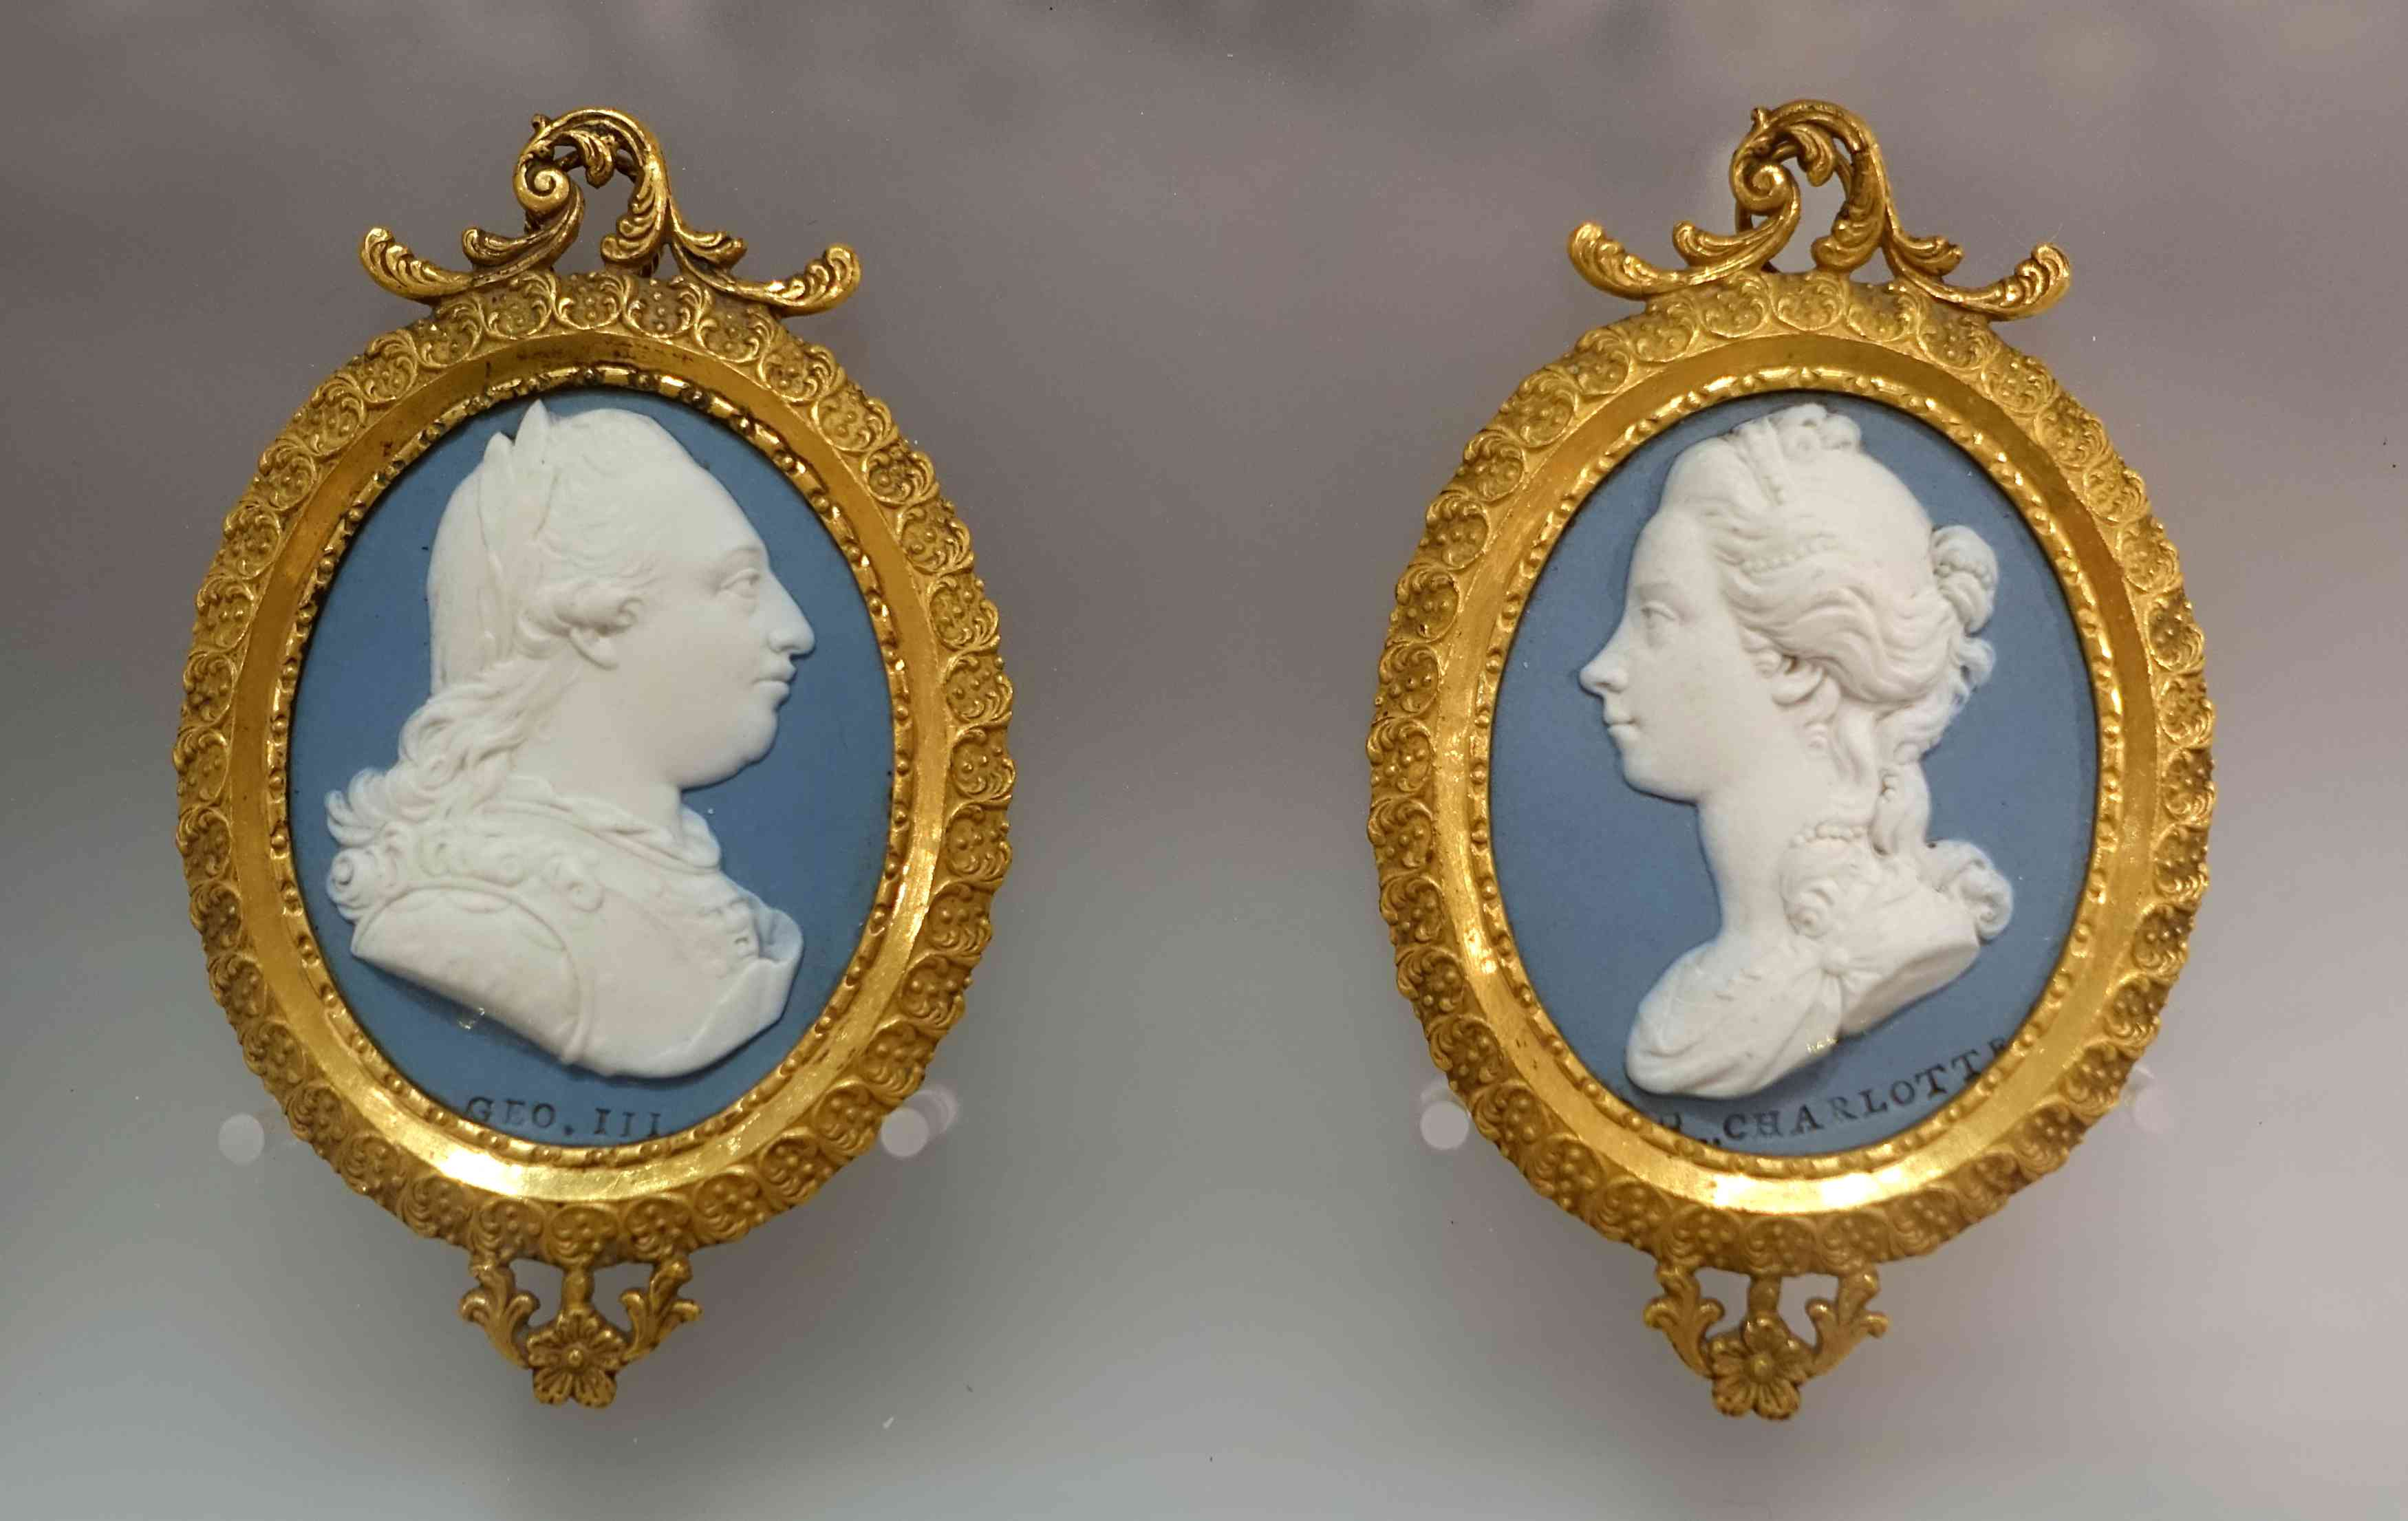 Wedgwood Cameo of British King George III and Queen Charlotte